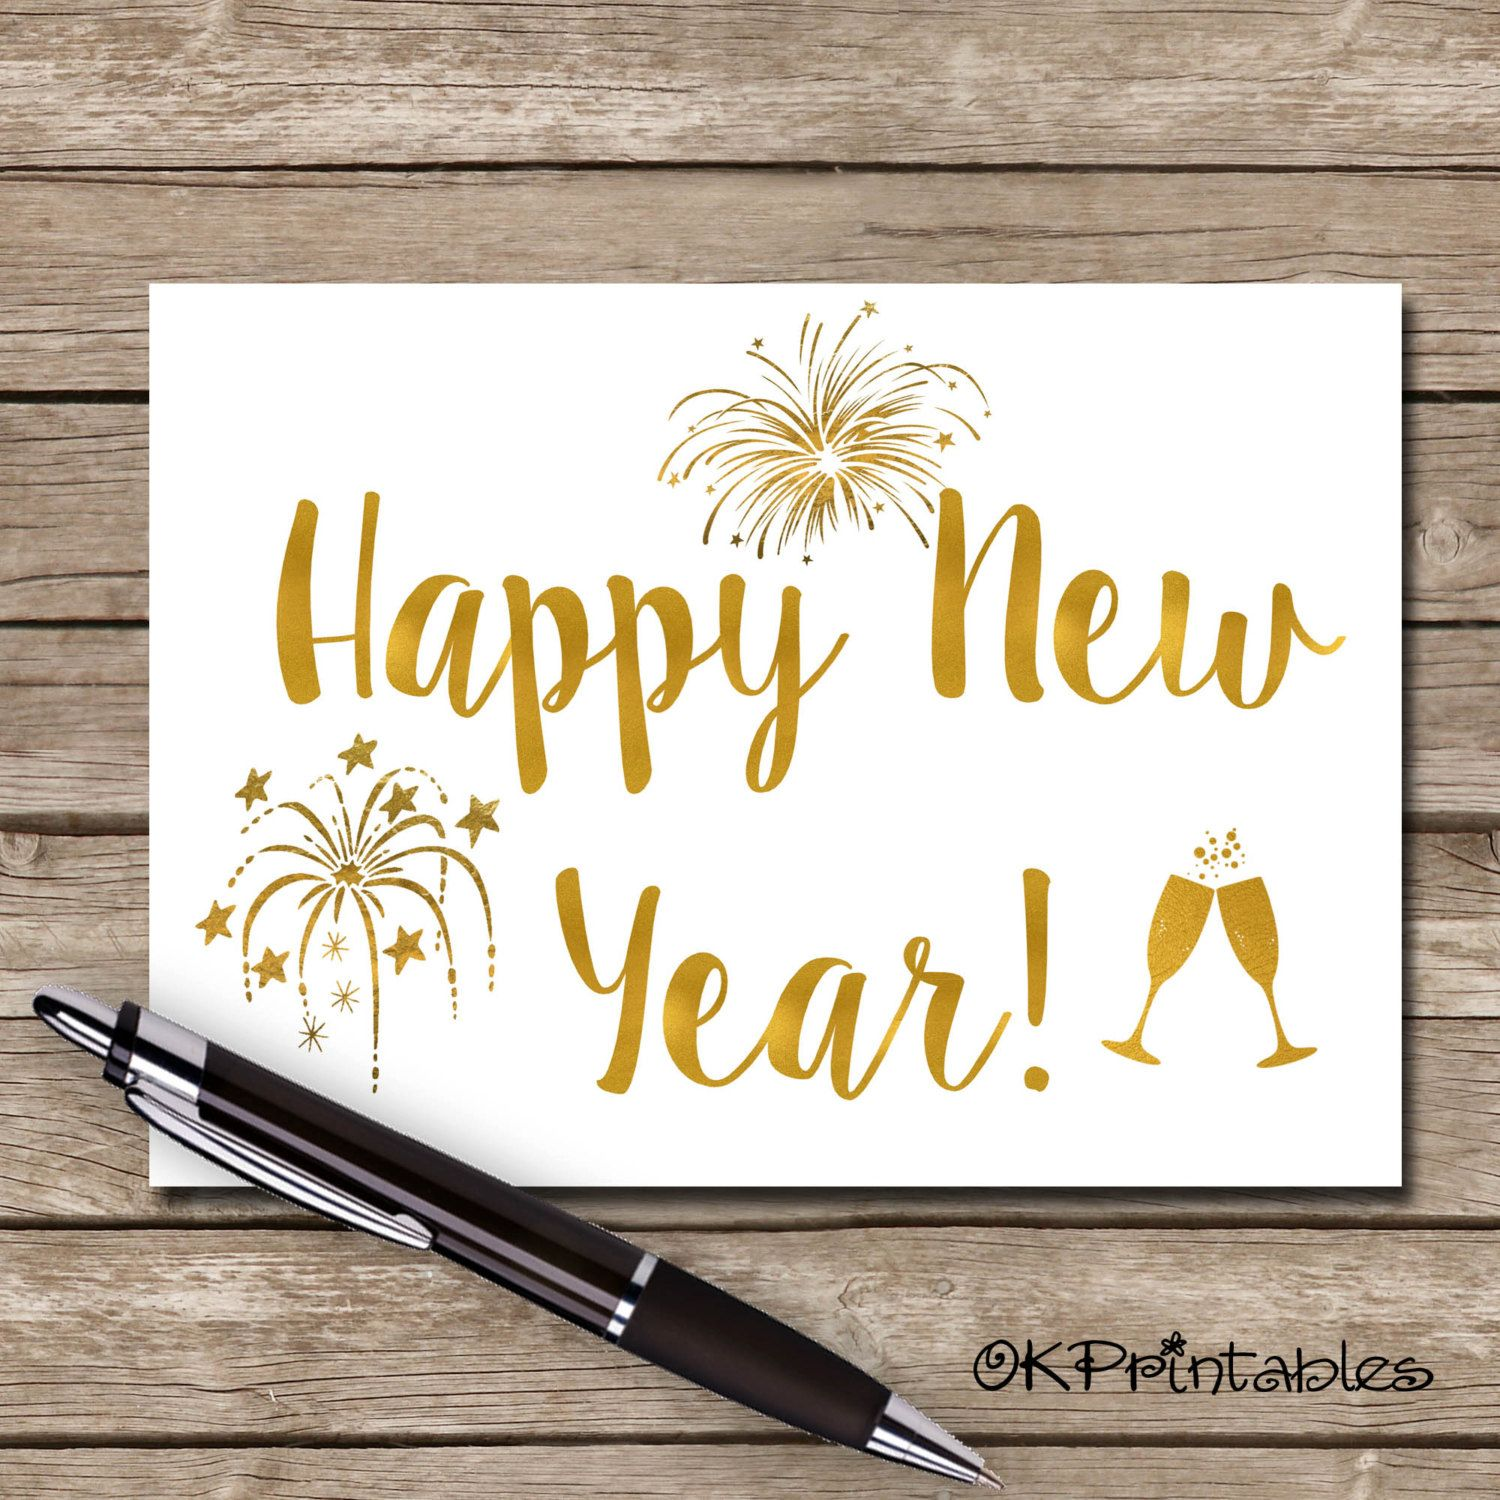 Printable Happy New Year Greeting Card Hand Letter Design Blank Inside Instant Downloa New Year Greeting Cards Happy New Year Greetings New Year Greetings